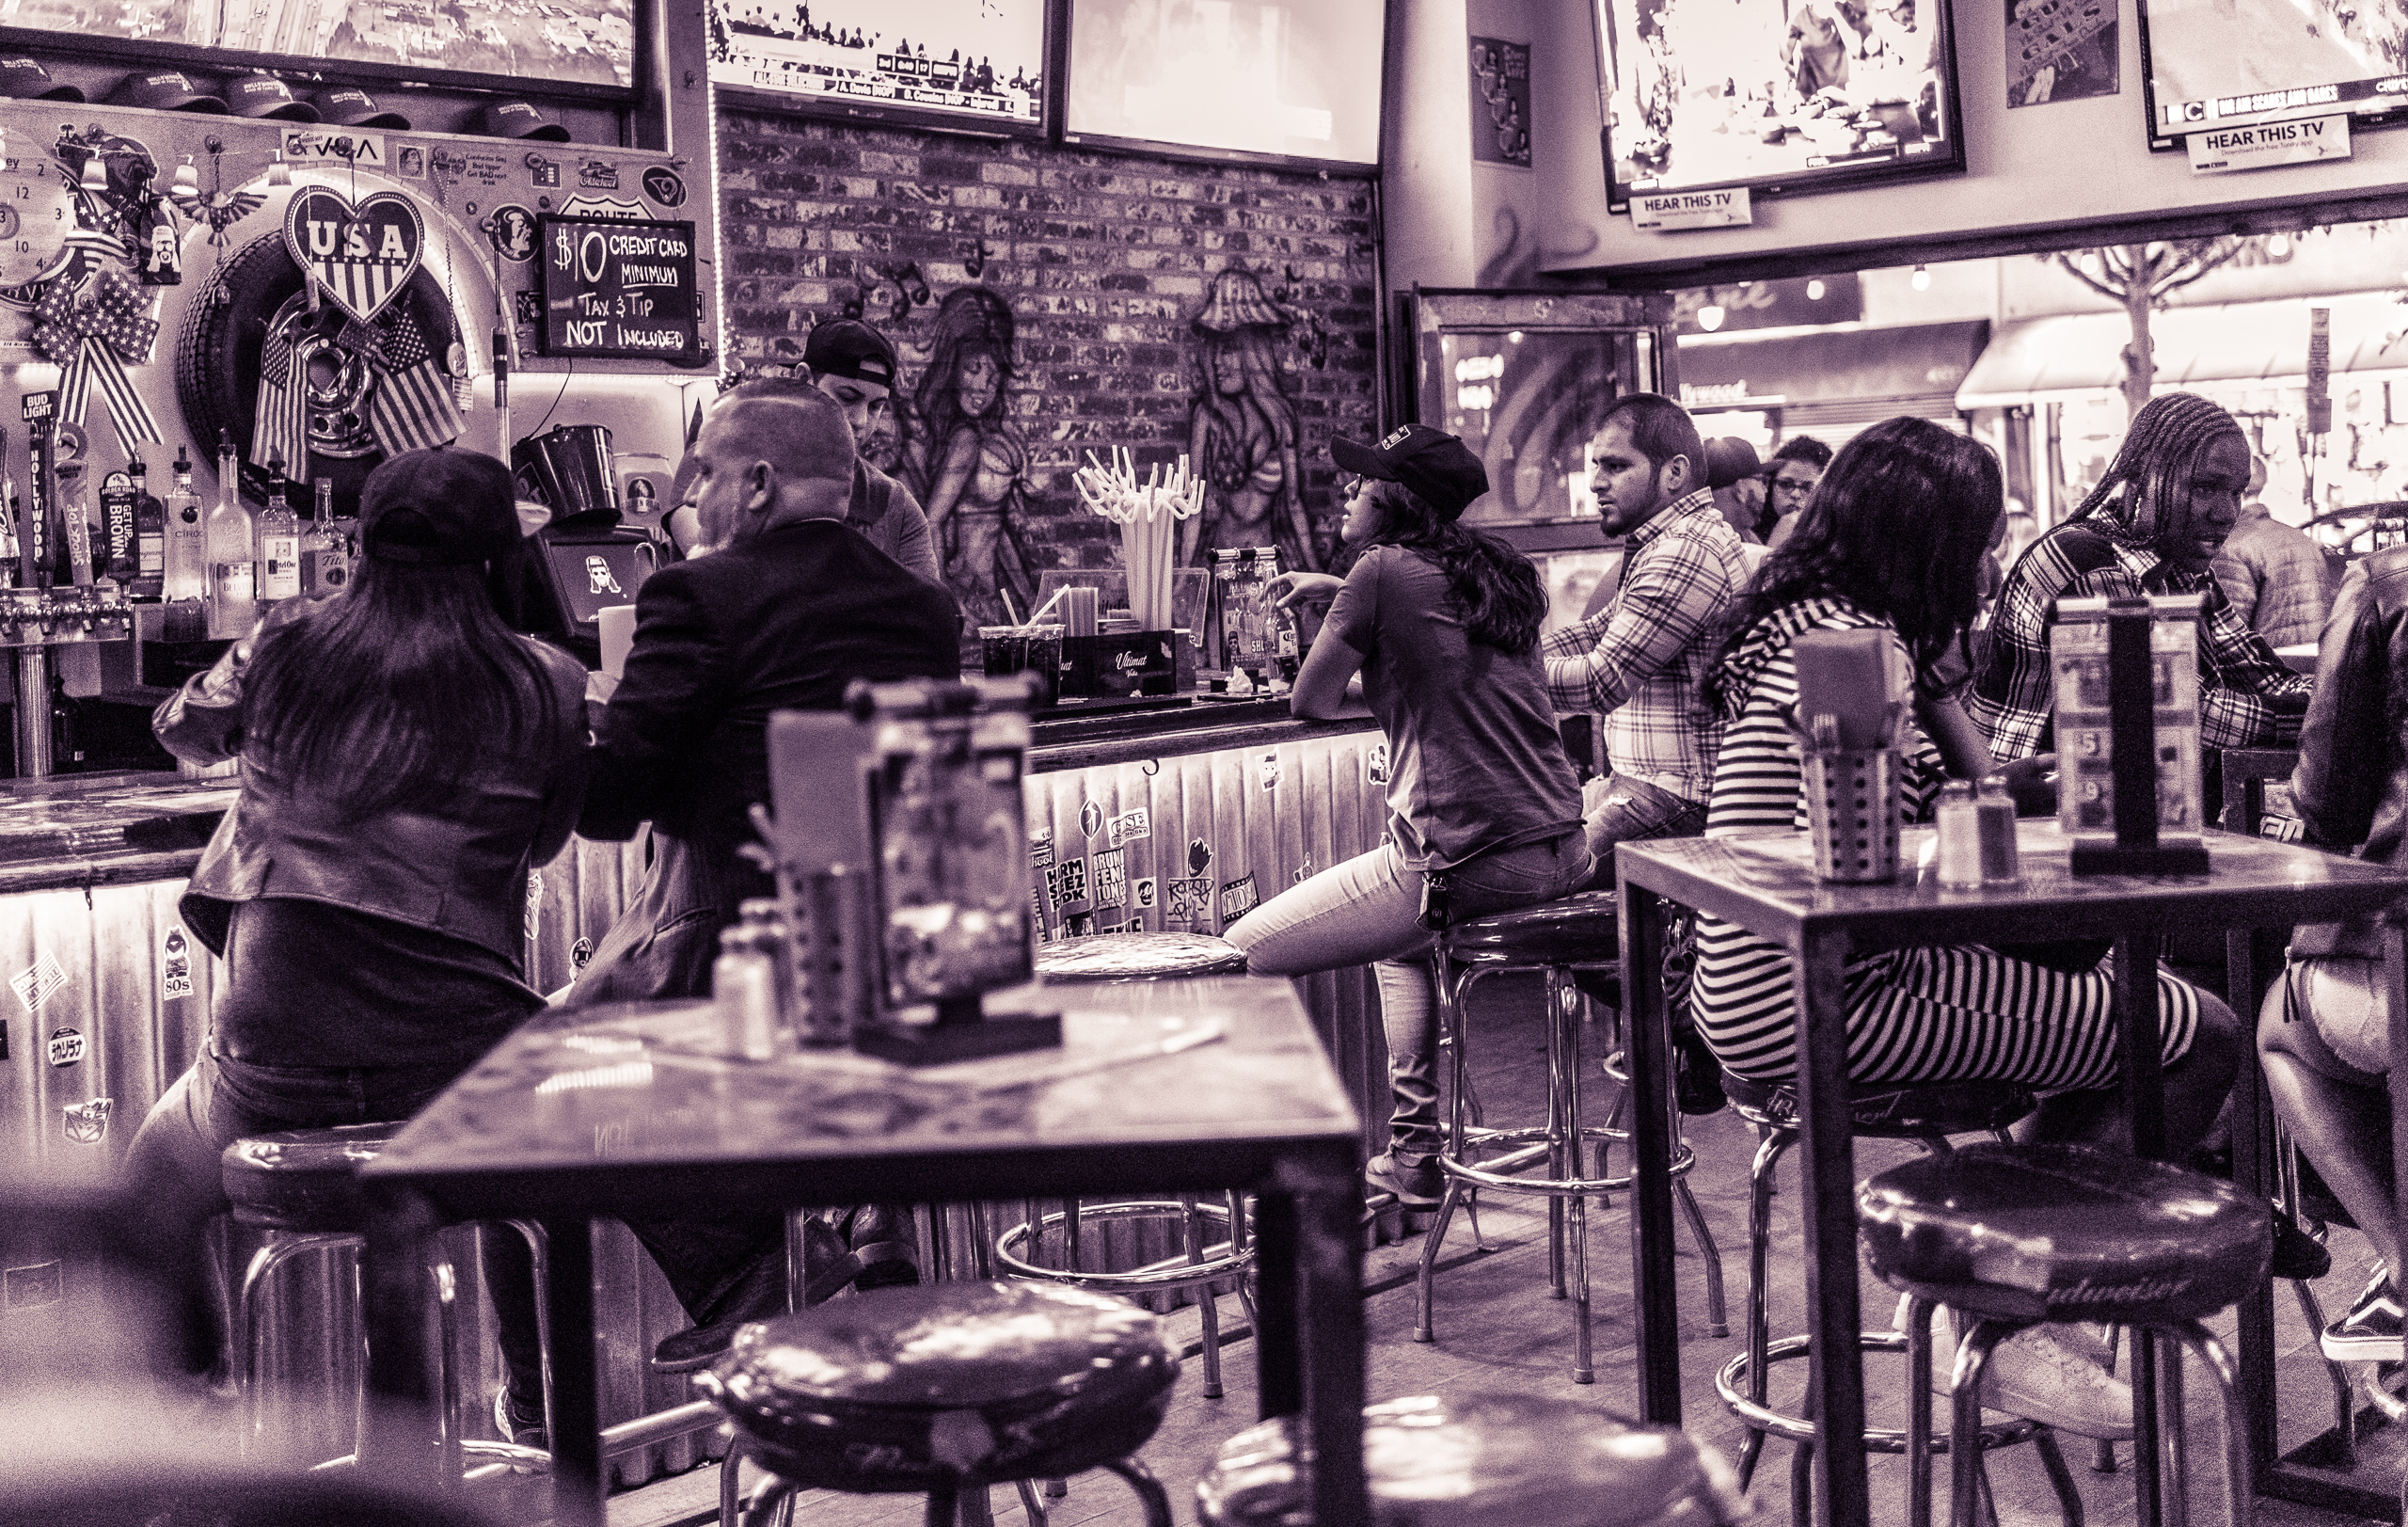 customers sit around the interior space of the Rusty Mullet bar & restaurant on Hollywood Blvd.